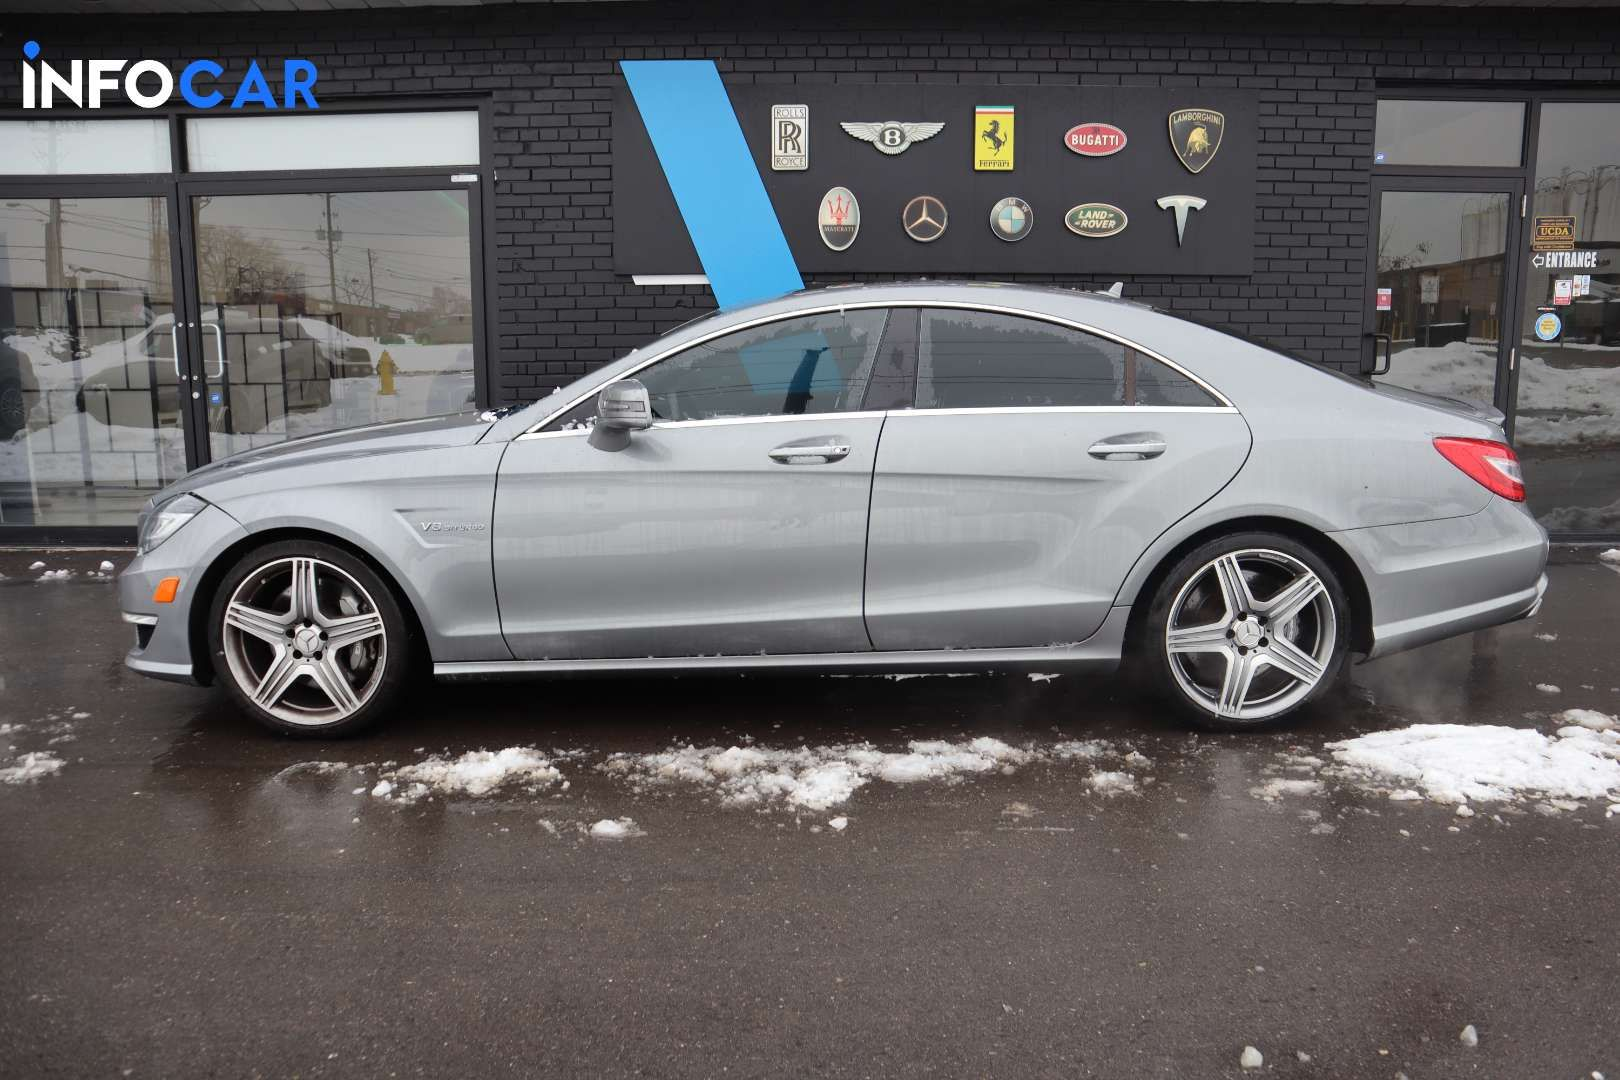 2012 Mercedes-Benz CLS-Class 63s - INFOCAR - Toronto's Most Comprehensive New and Used Auto Trading Platform